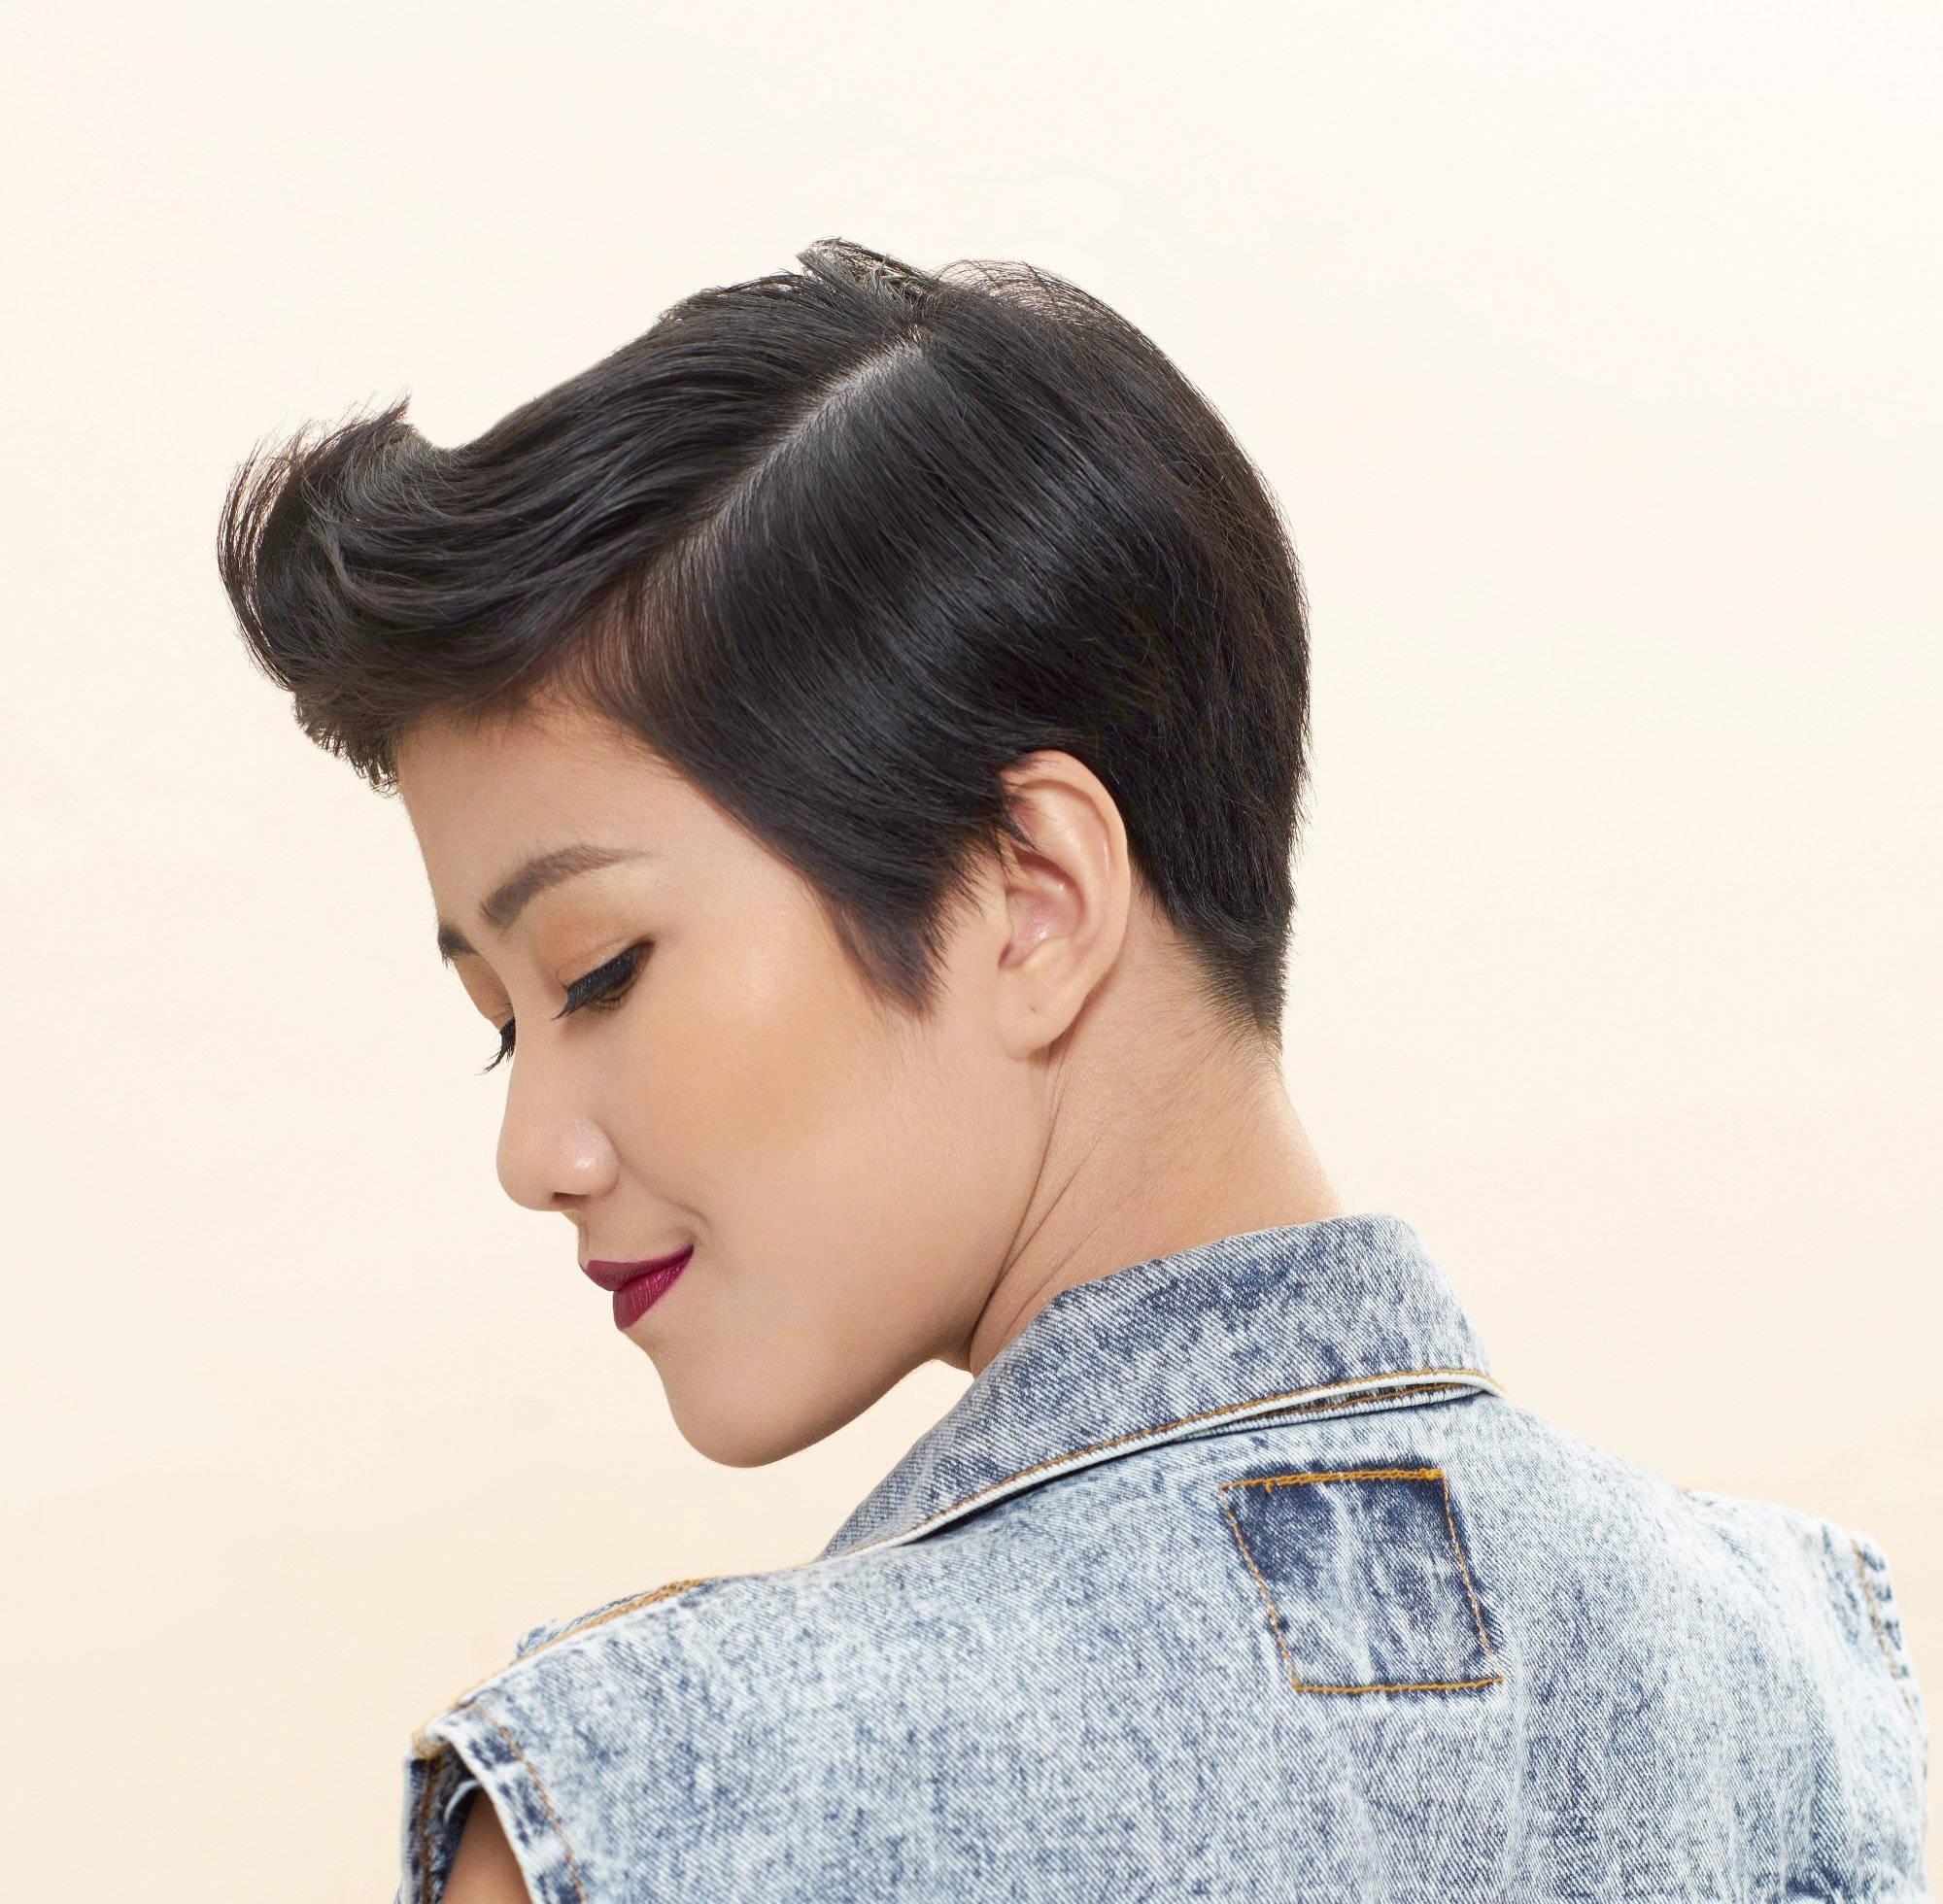 How to use hair wax: Closeup shot of an Asian woman with black pixie cut wearing a denim vest